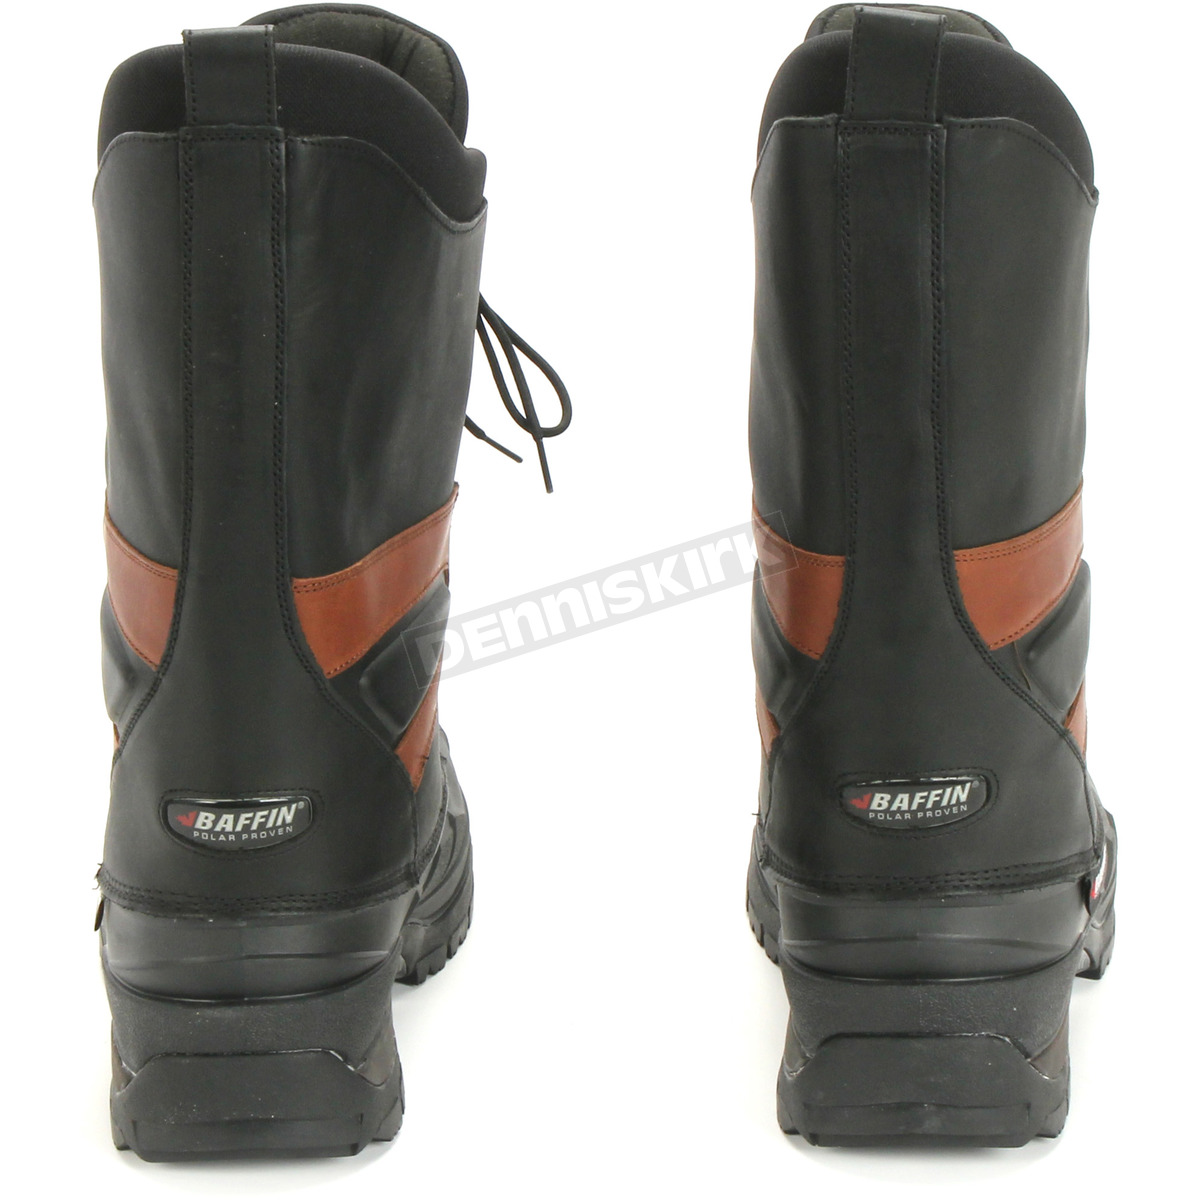 Details about Baffin BlackBrown Apex Boots ( Mens Size 10 ) 4000 1305 10